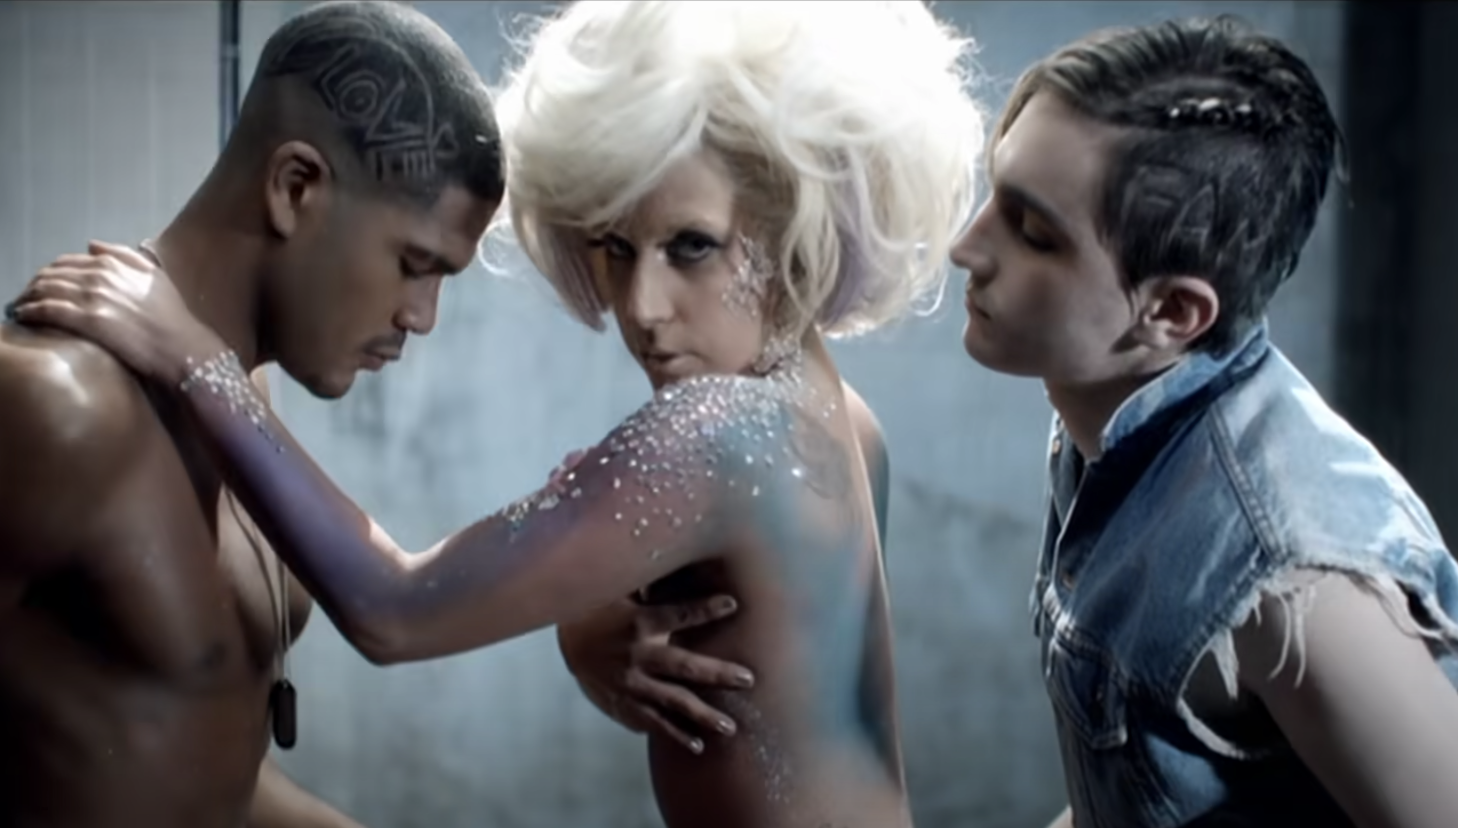 Lady Gaga naked in glitter between two men